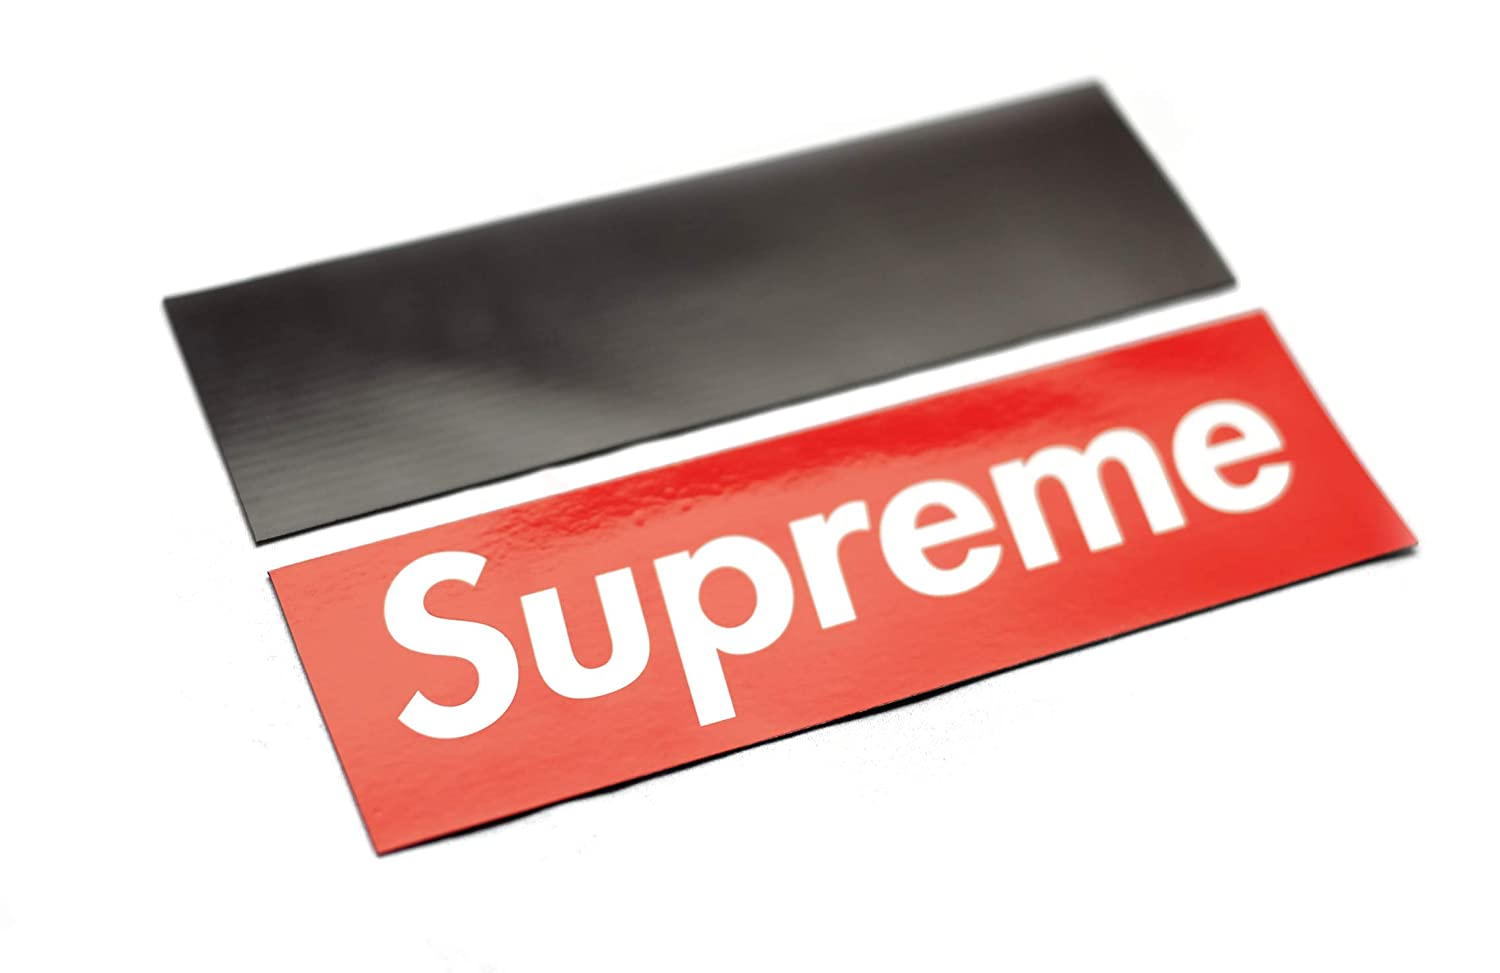 Supreme box logo sticker 7 25 inches x 2 inches 1 amazon ca home kitchen